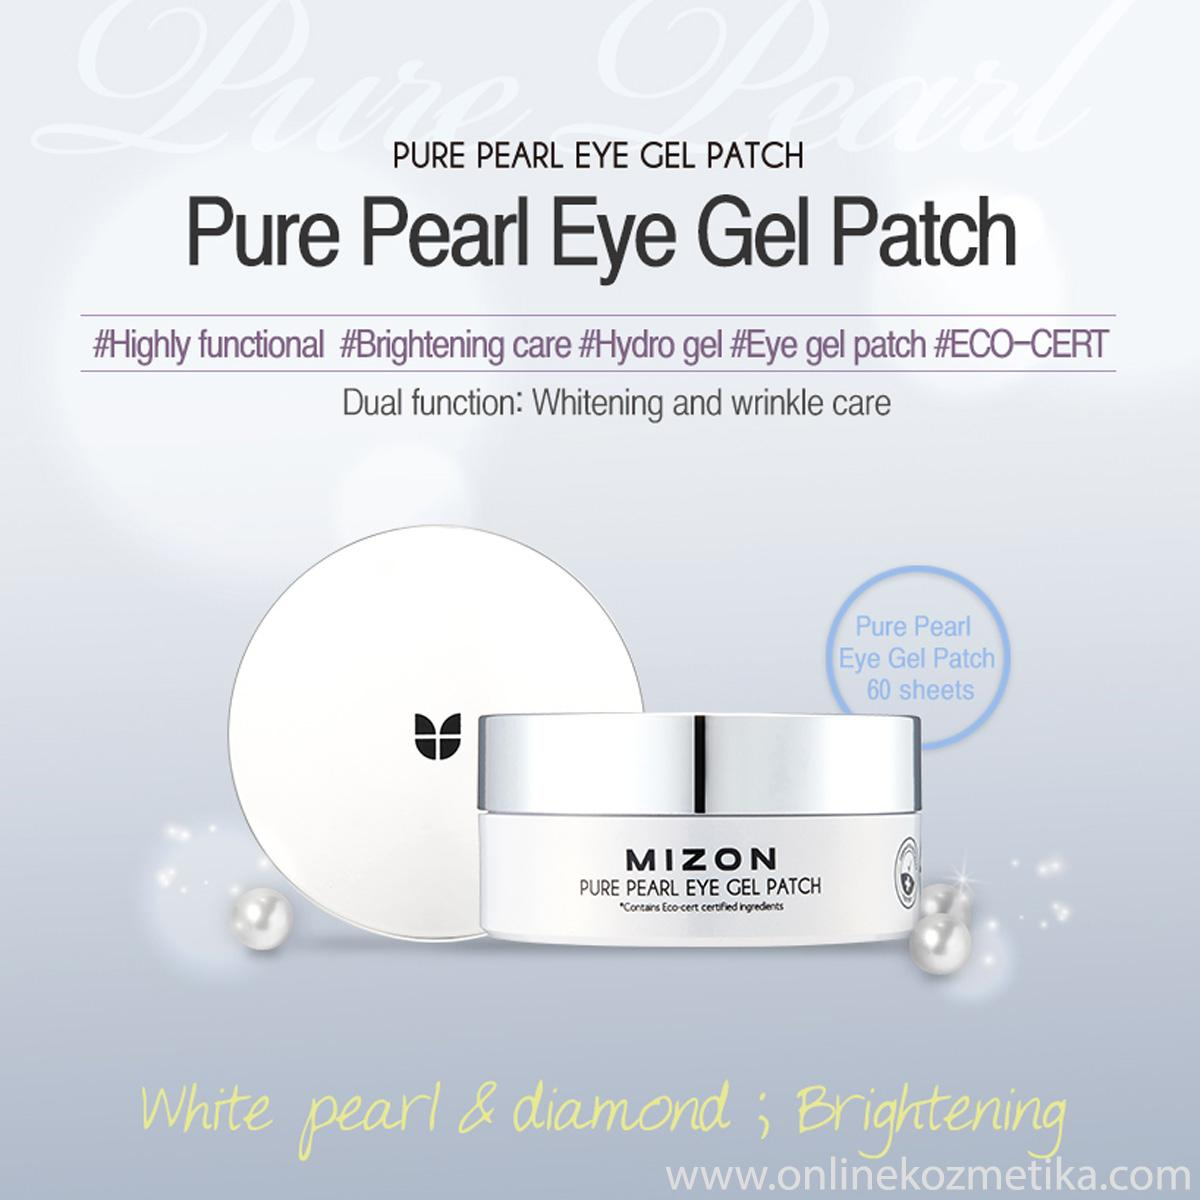 Mizon Pure Pearl Eye Gel Patch